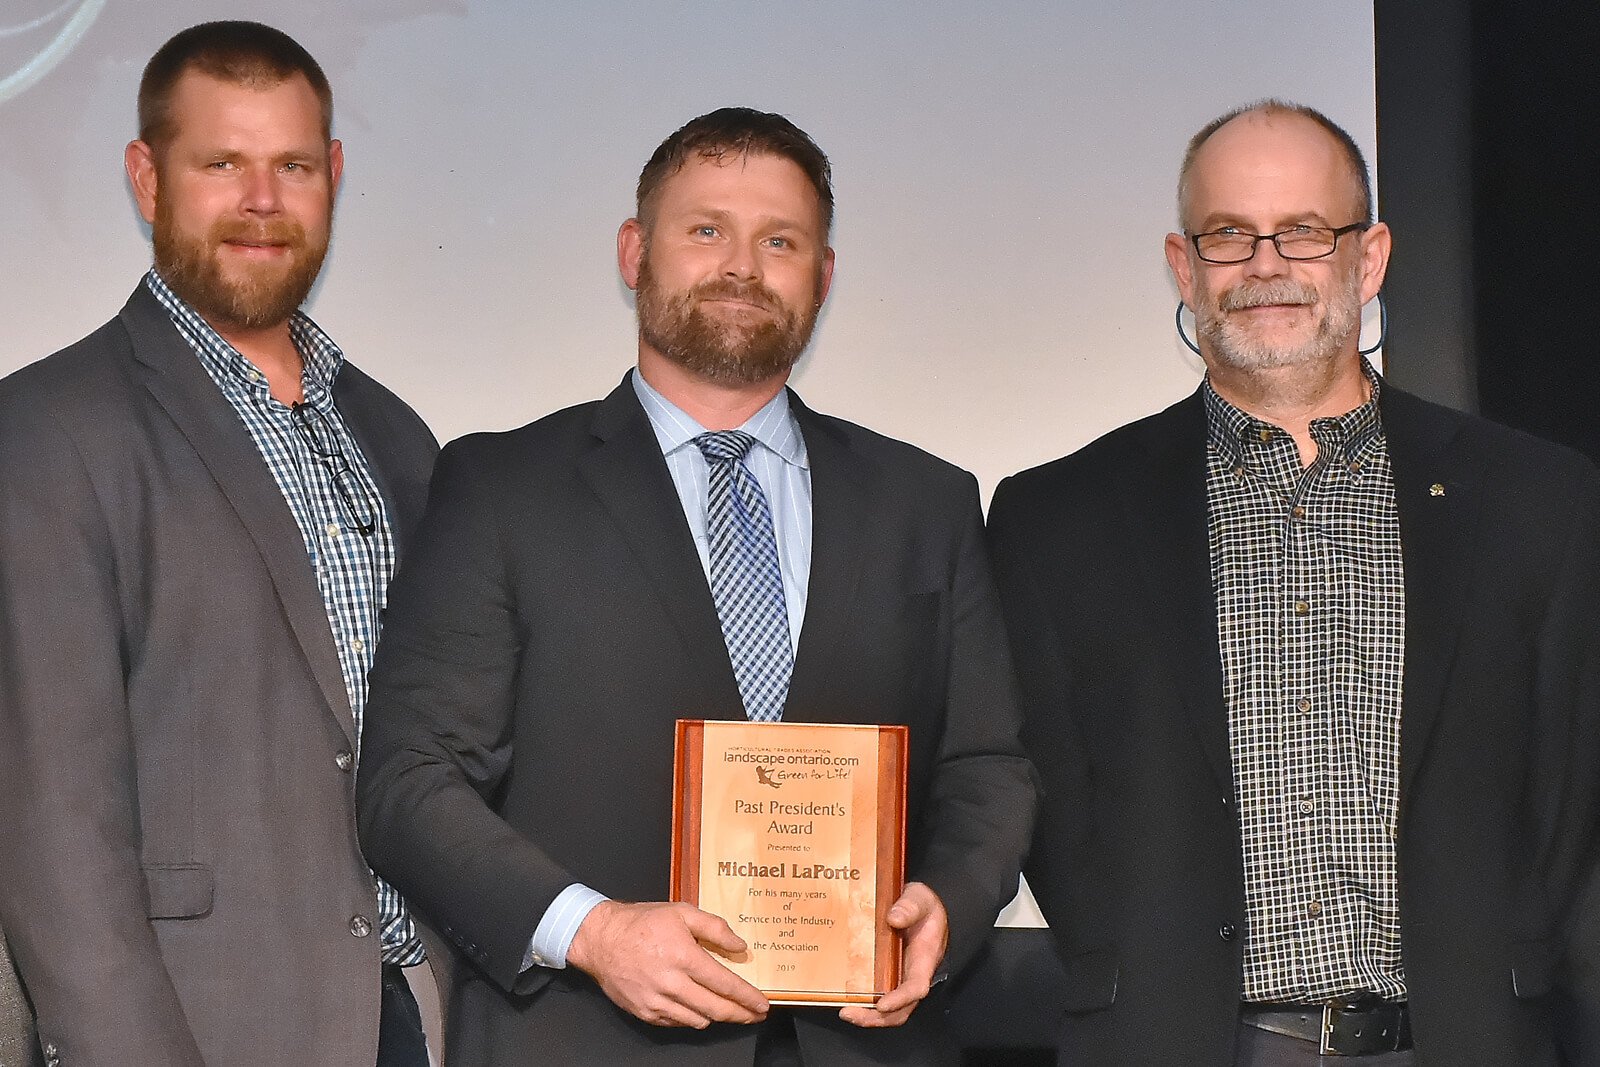 Michael LaPorte (centre), accepts the 2019 Past President's Award.